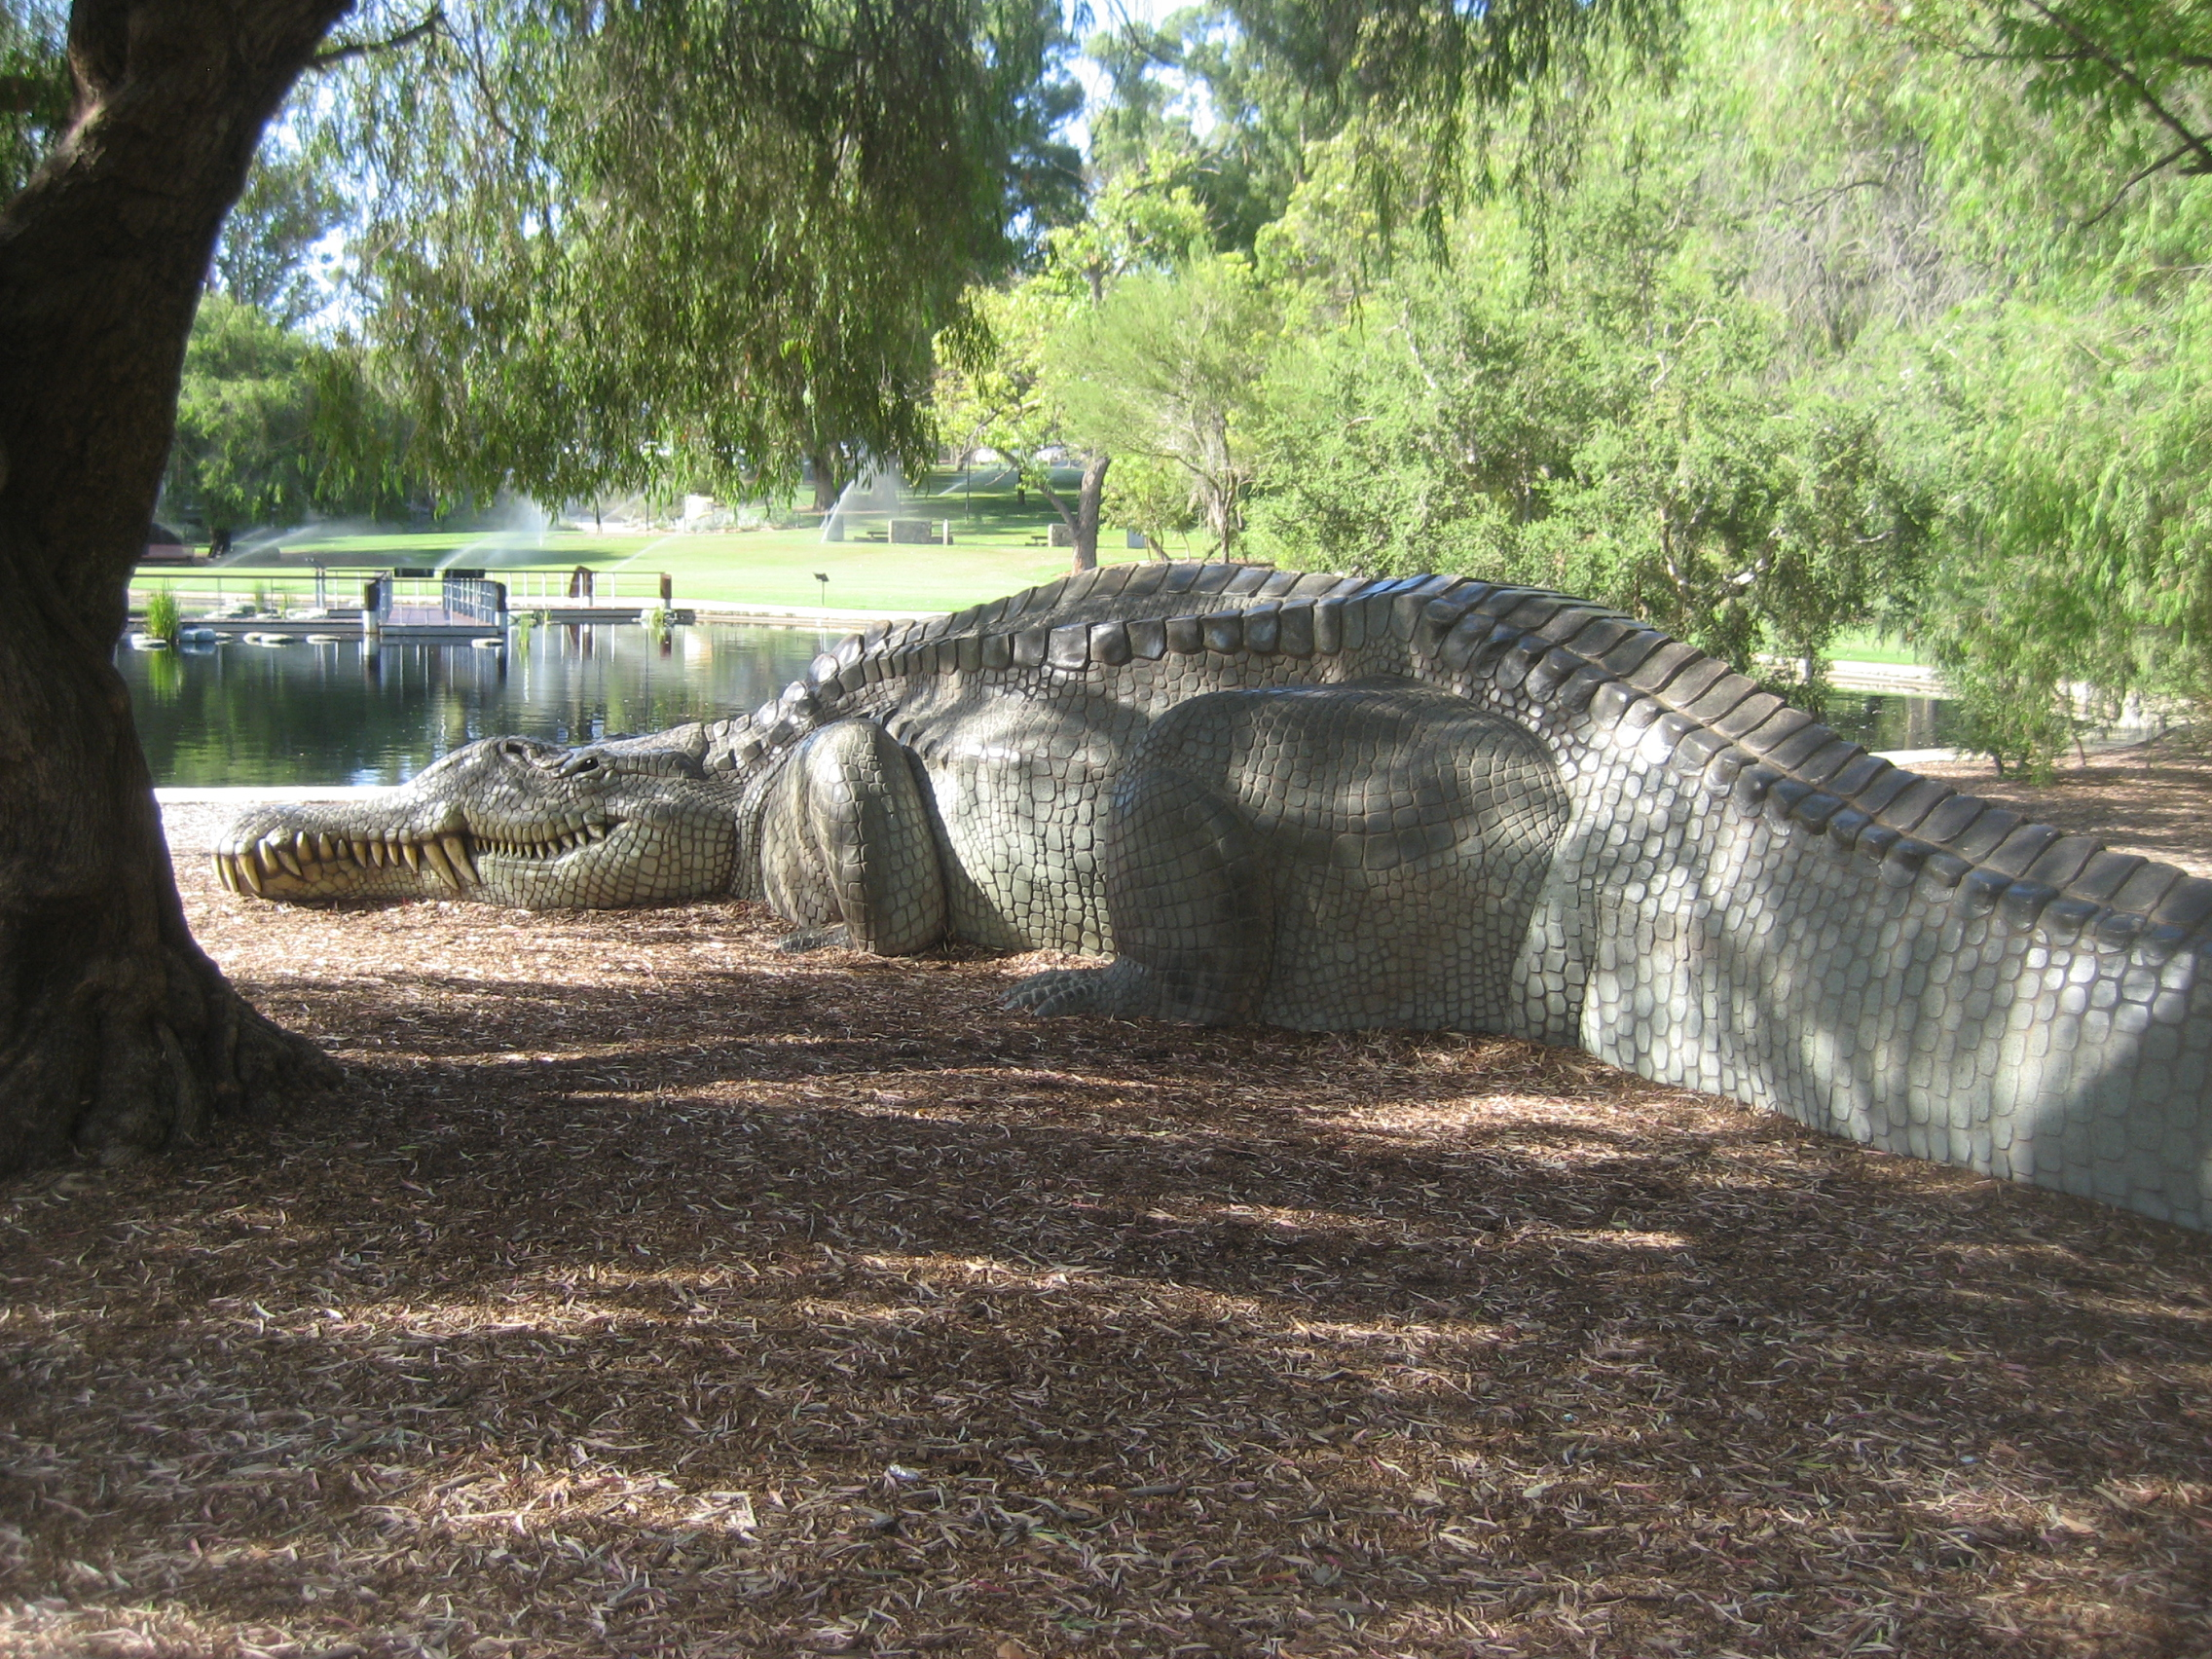 File:Public art - Phytosaur, Kings Park Perth jpg - Wikimedia Commons